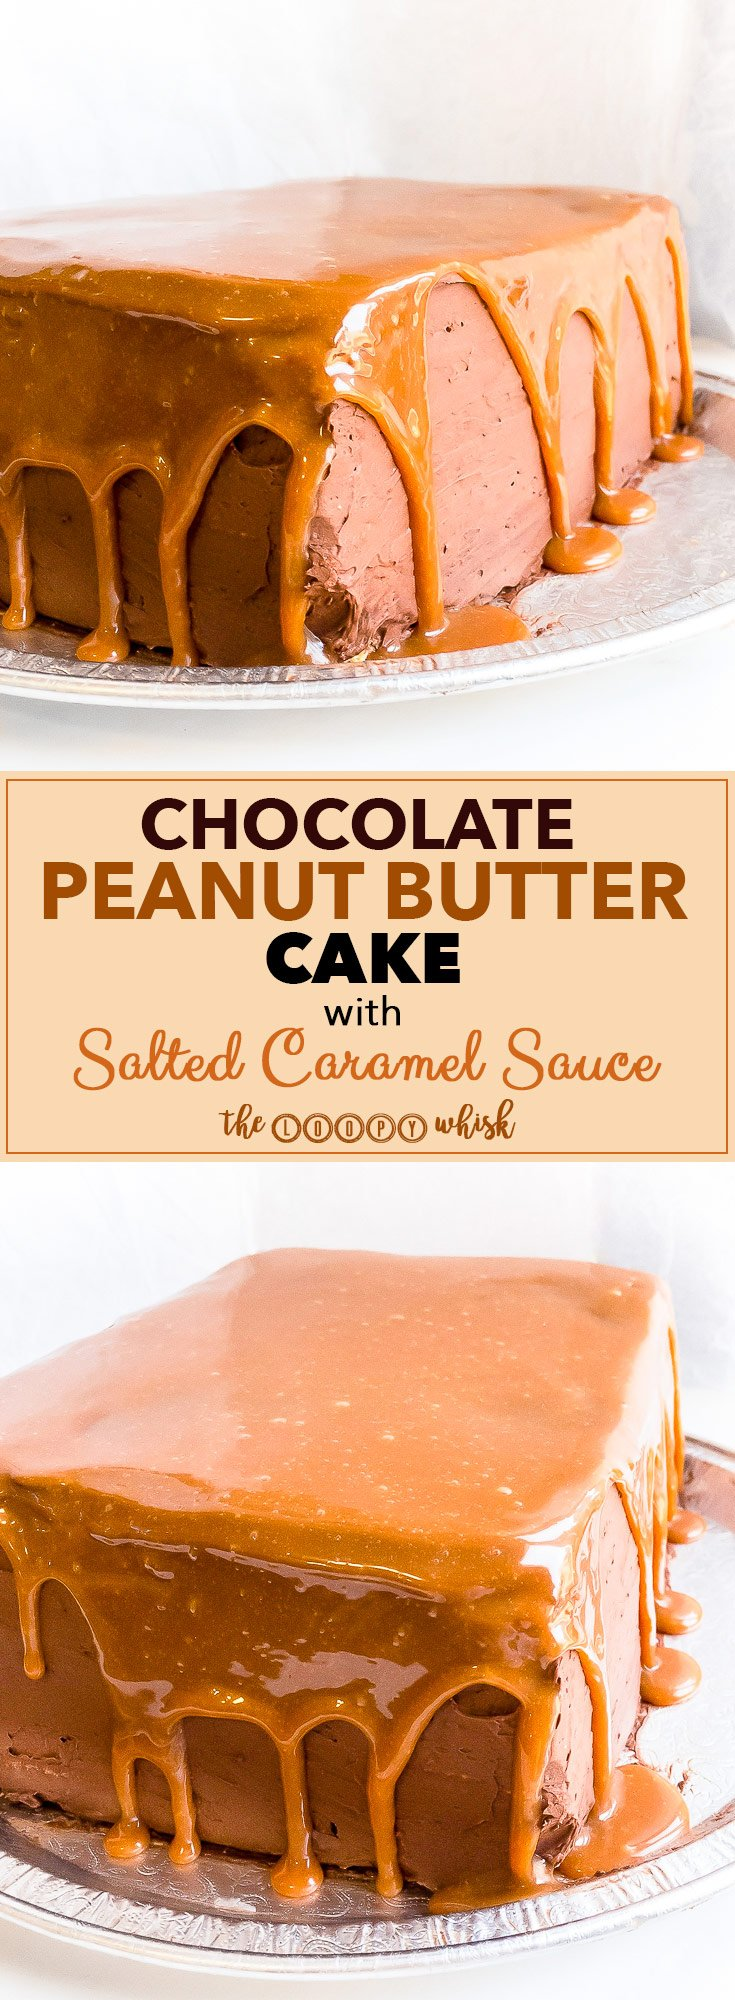 Chocolate Peanut Butter Cake with Salted Caramel Sauce - This delicious sweet treat combines everyone's favourite flavours into one amazingly tasty and scrumptious looking drip cake. Layers of airy but moist peanut butter sponge are sandwiched between decadent silky chocolate buttercream, and the salted caramel sauce adds the finishing touch.